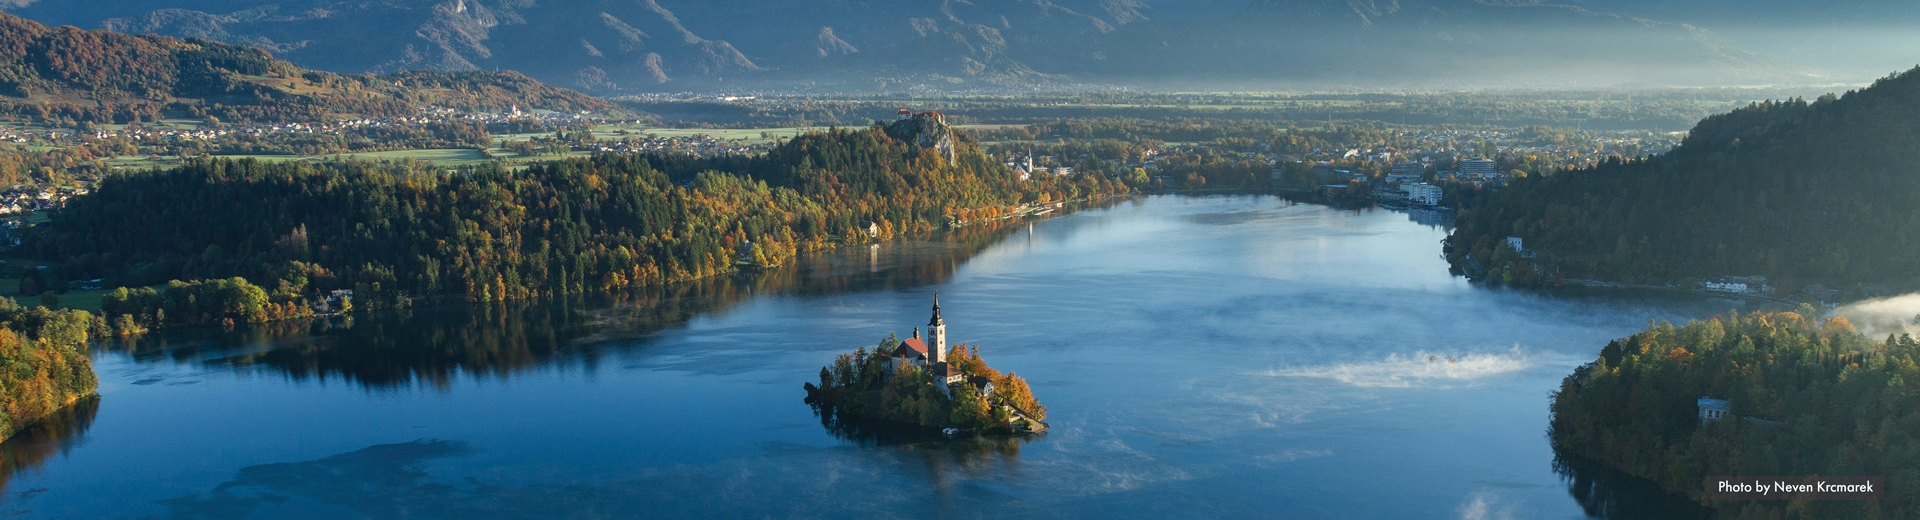 discover slovenia lake bled